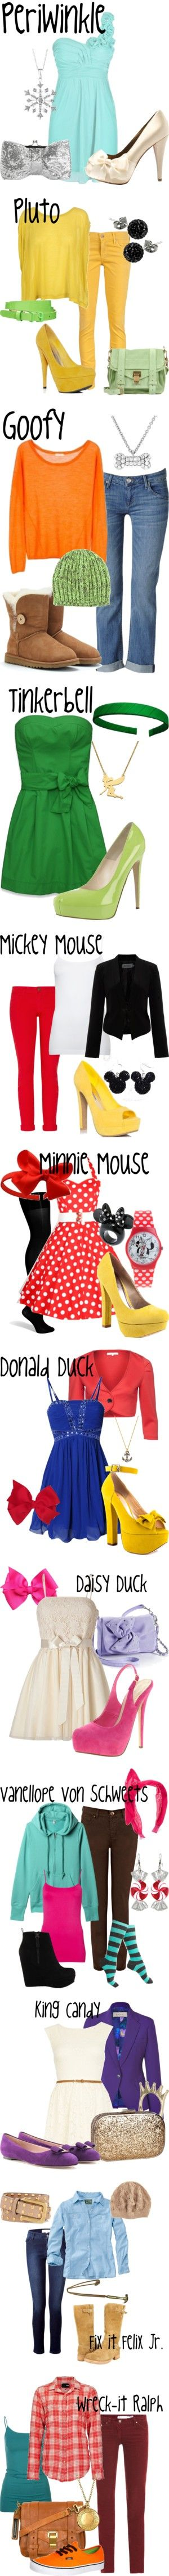 Disney Inspired Outfits...Goofy's is my favorite